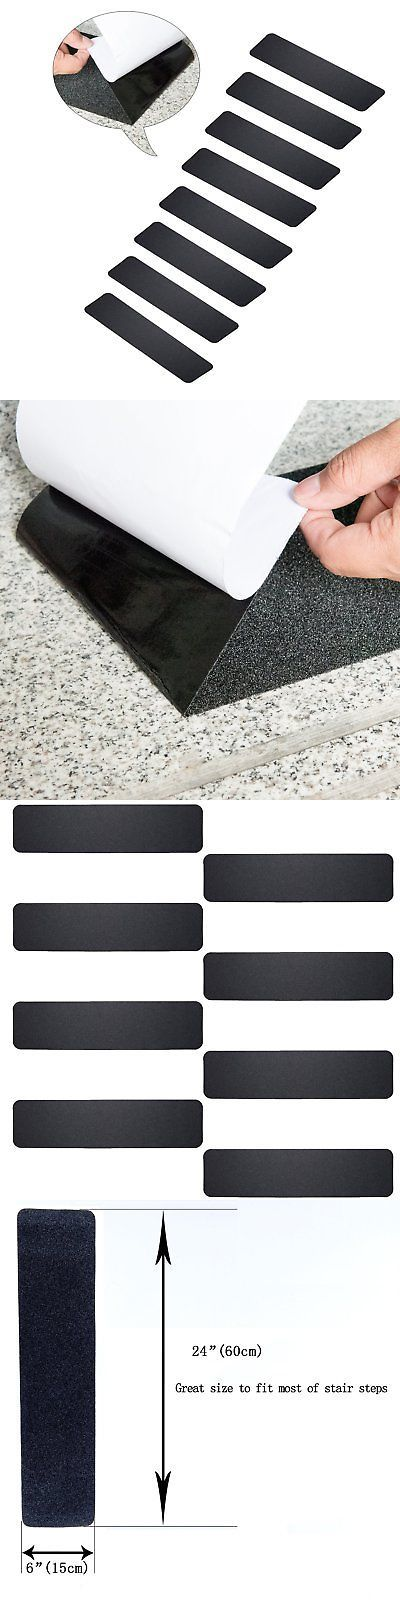 Best Stair Treads 175517 Mbigm Pack Of 8 Non Slip Safety Step 400 x 300